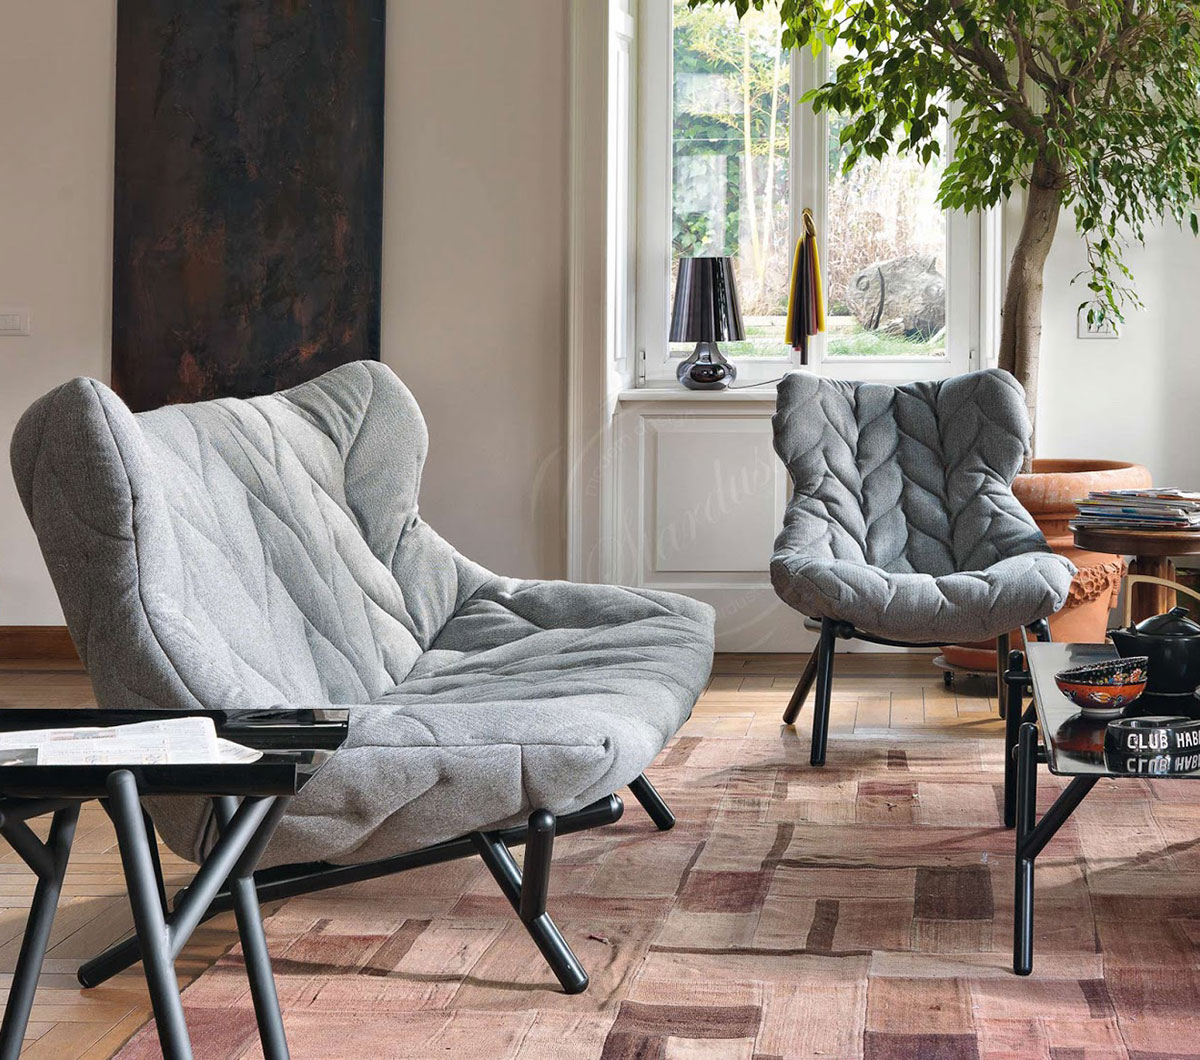 Foliage Sofa & Chair by Patricia Urquiola for Kartell | Yellowtrace